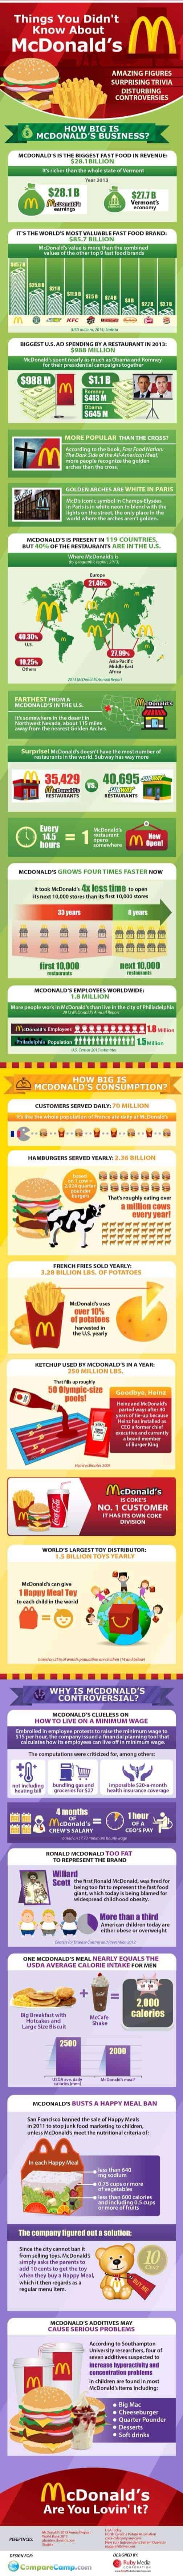 Things You Didn't Know About McDonald's